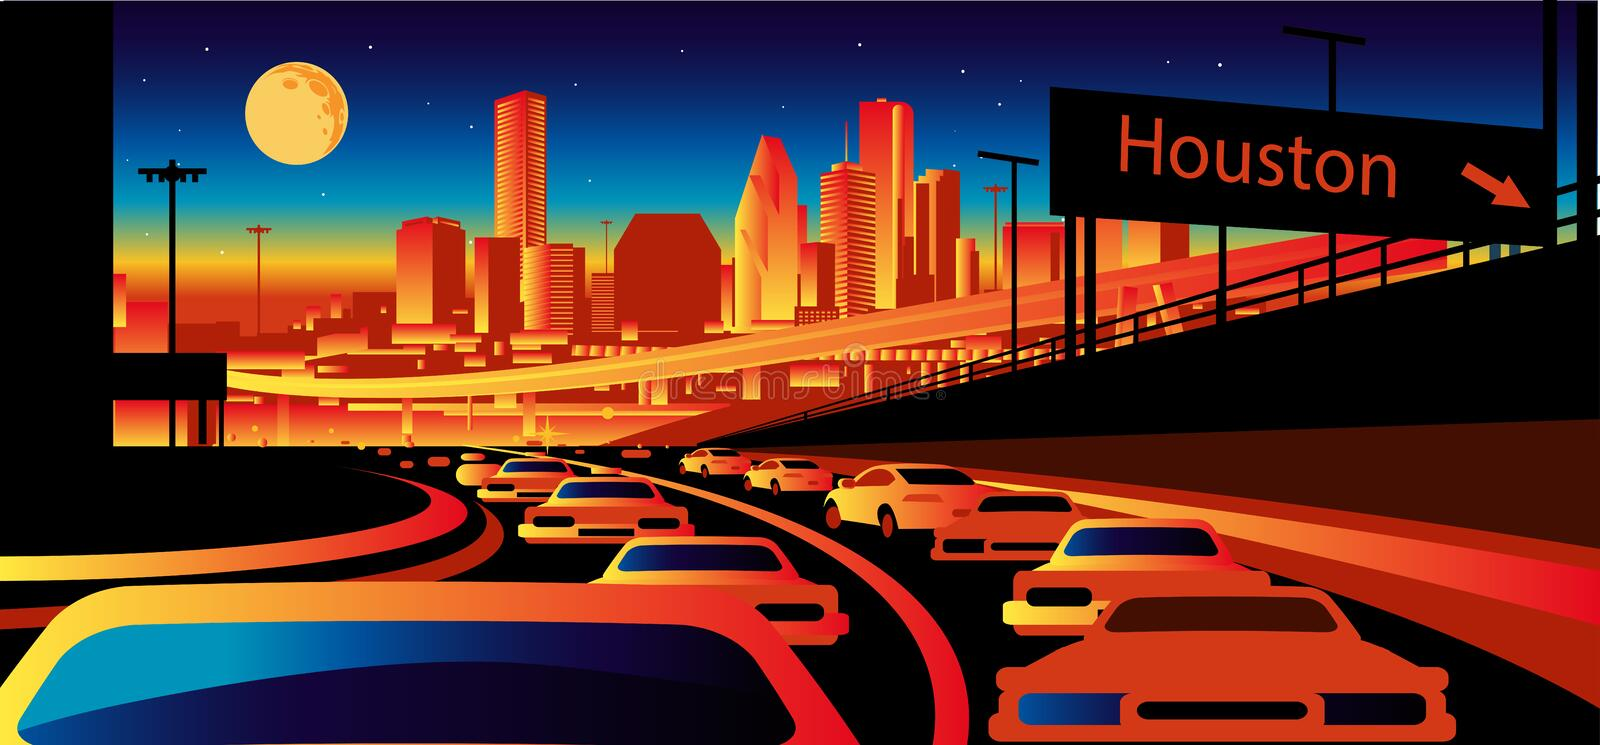 De Horizon van Houston Texas vector illustratie